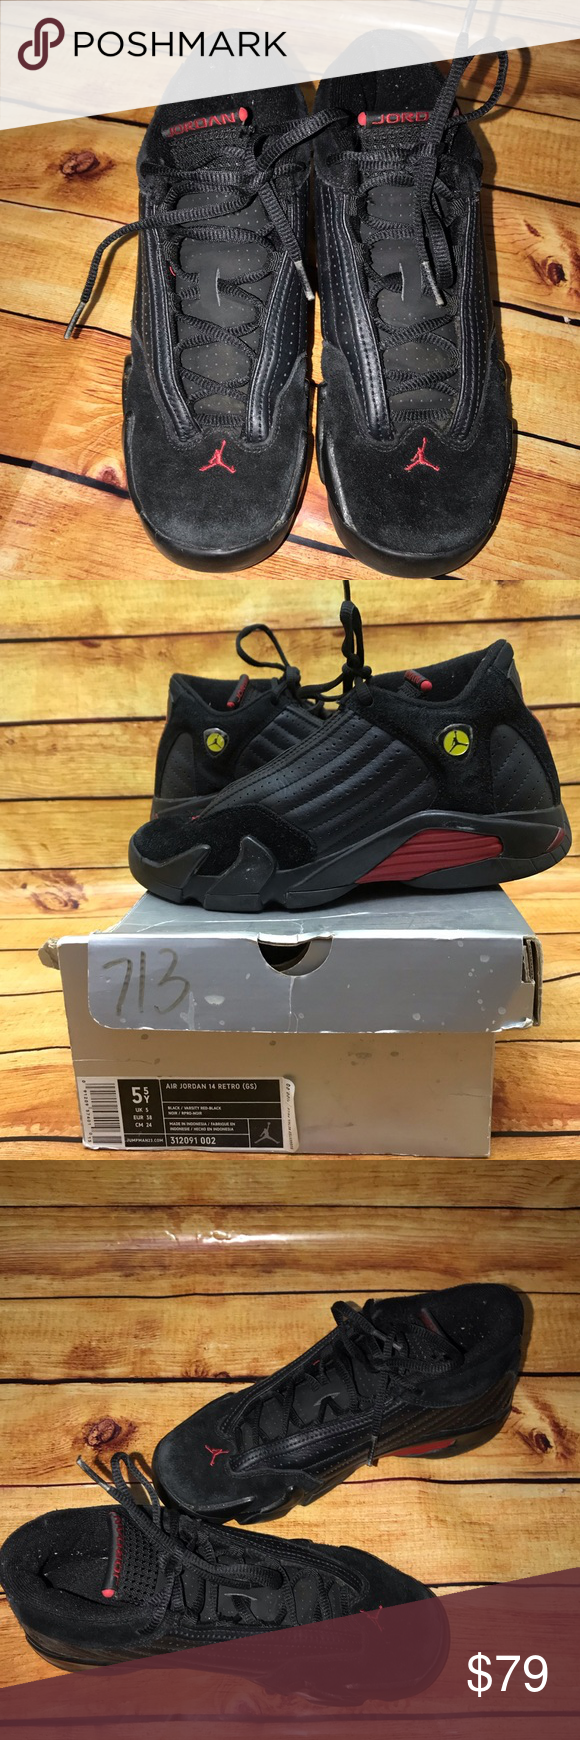 Air Jordan Retro 14 Pre Owned, gently used, comes with the